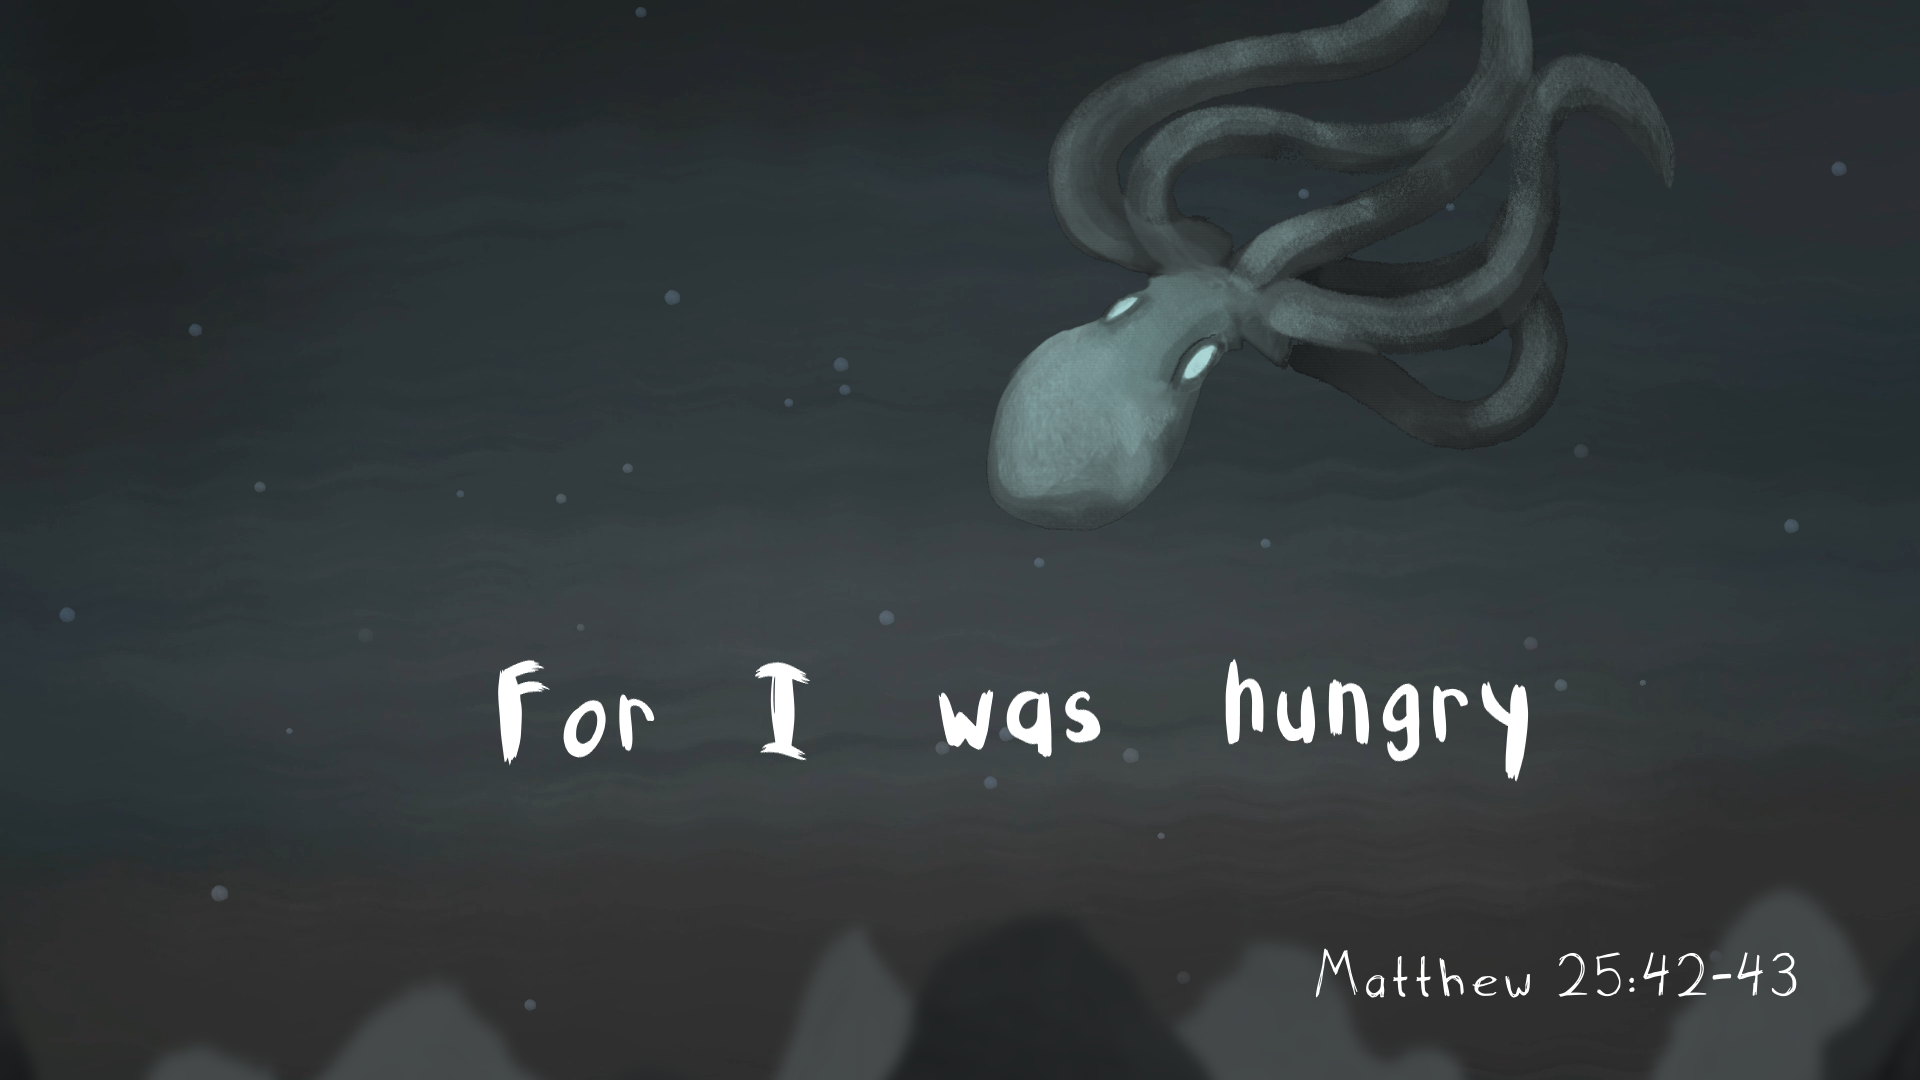 """A still from the animated video """"By Our Love,"""" showing an octopus floating near the words """"For I was hungry,"""" taken from the Gospel of Matthew."""